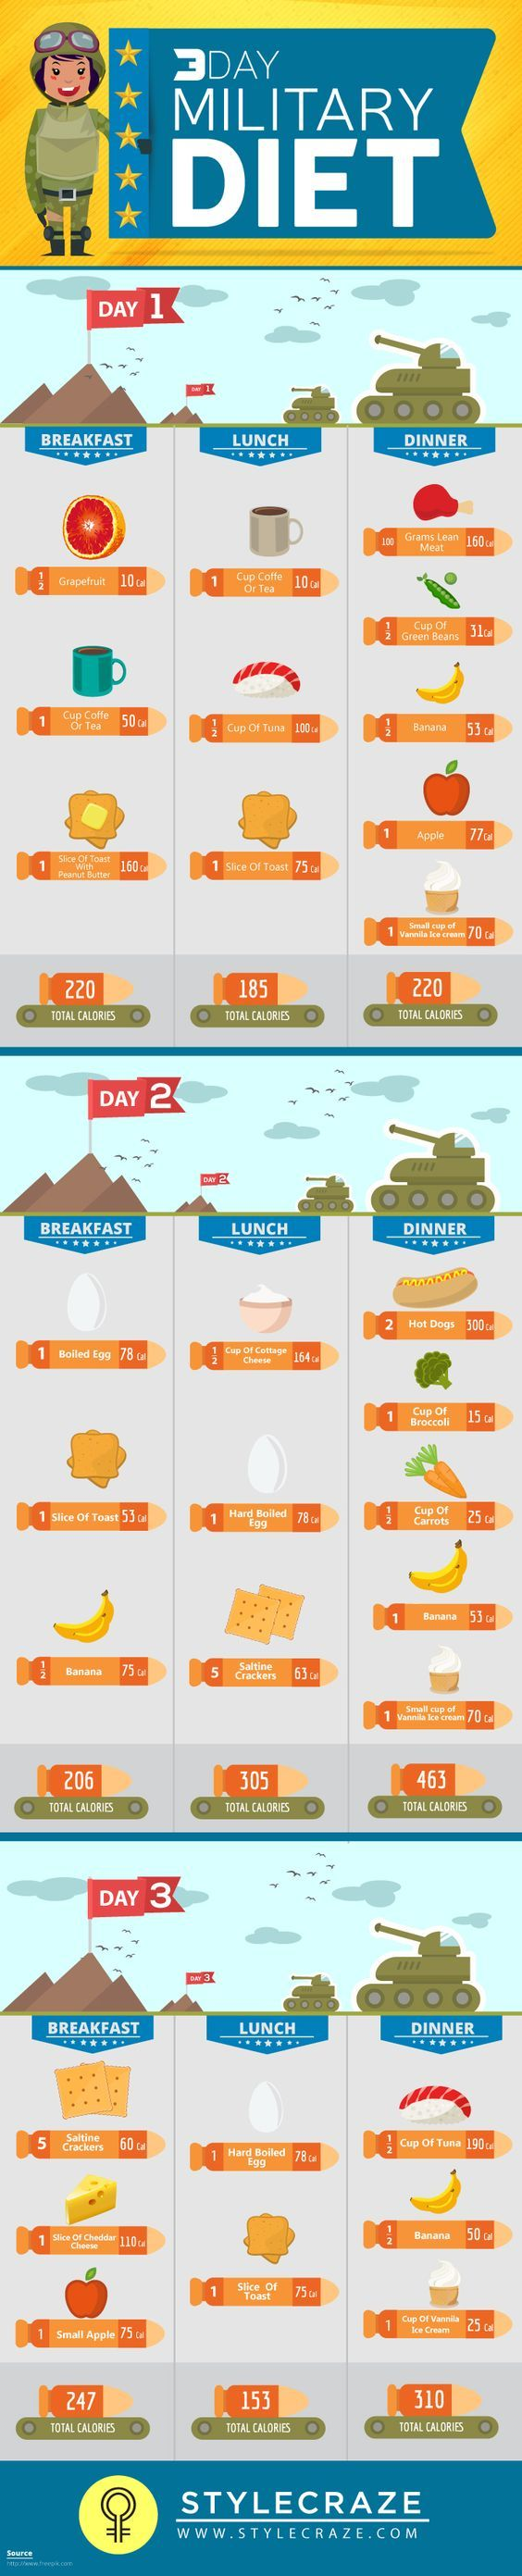 Loose weight fast with the 3 day military diet. Follow as directed and you will see results.